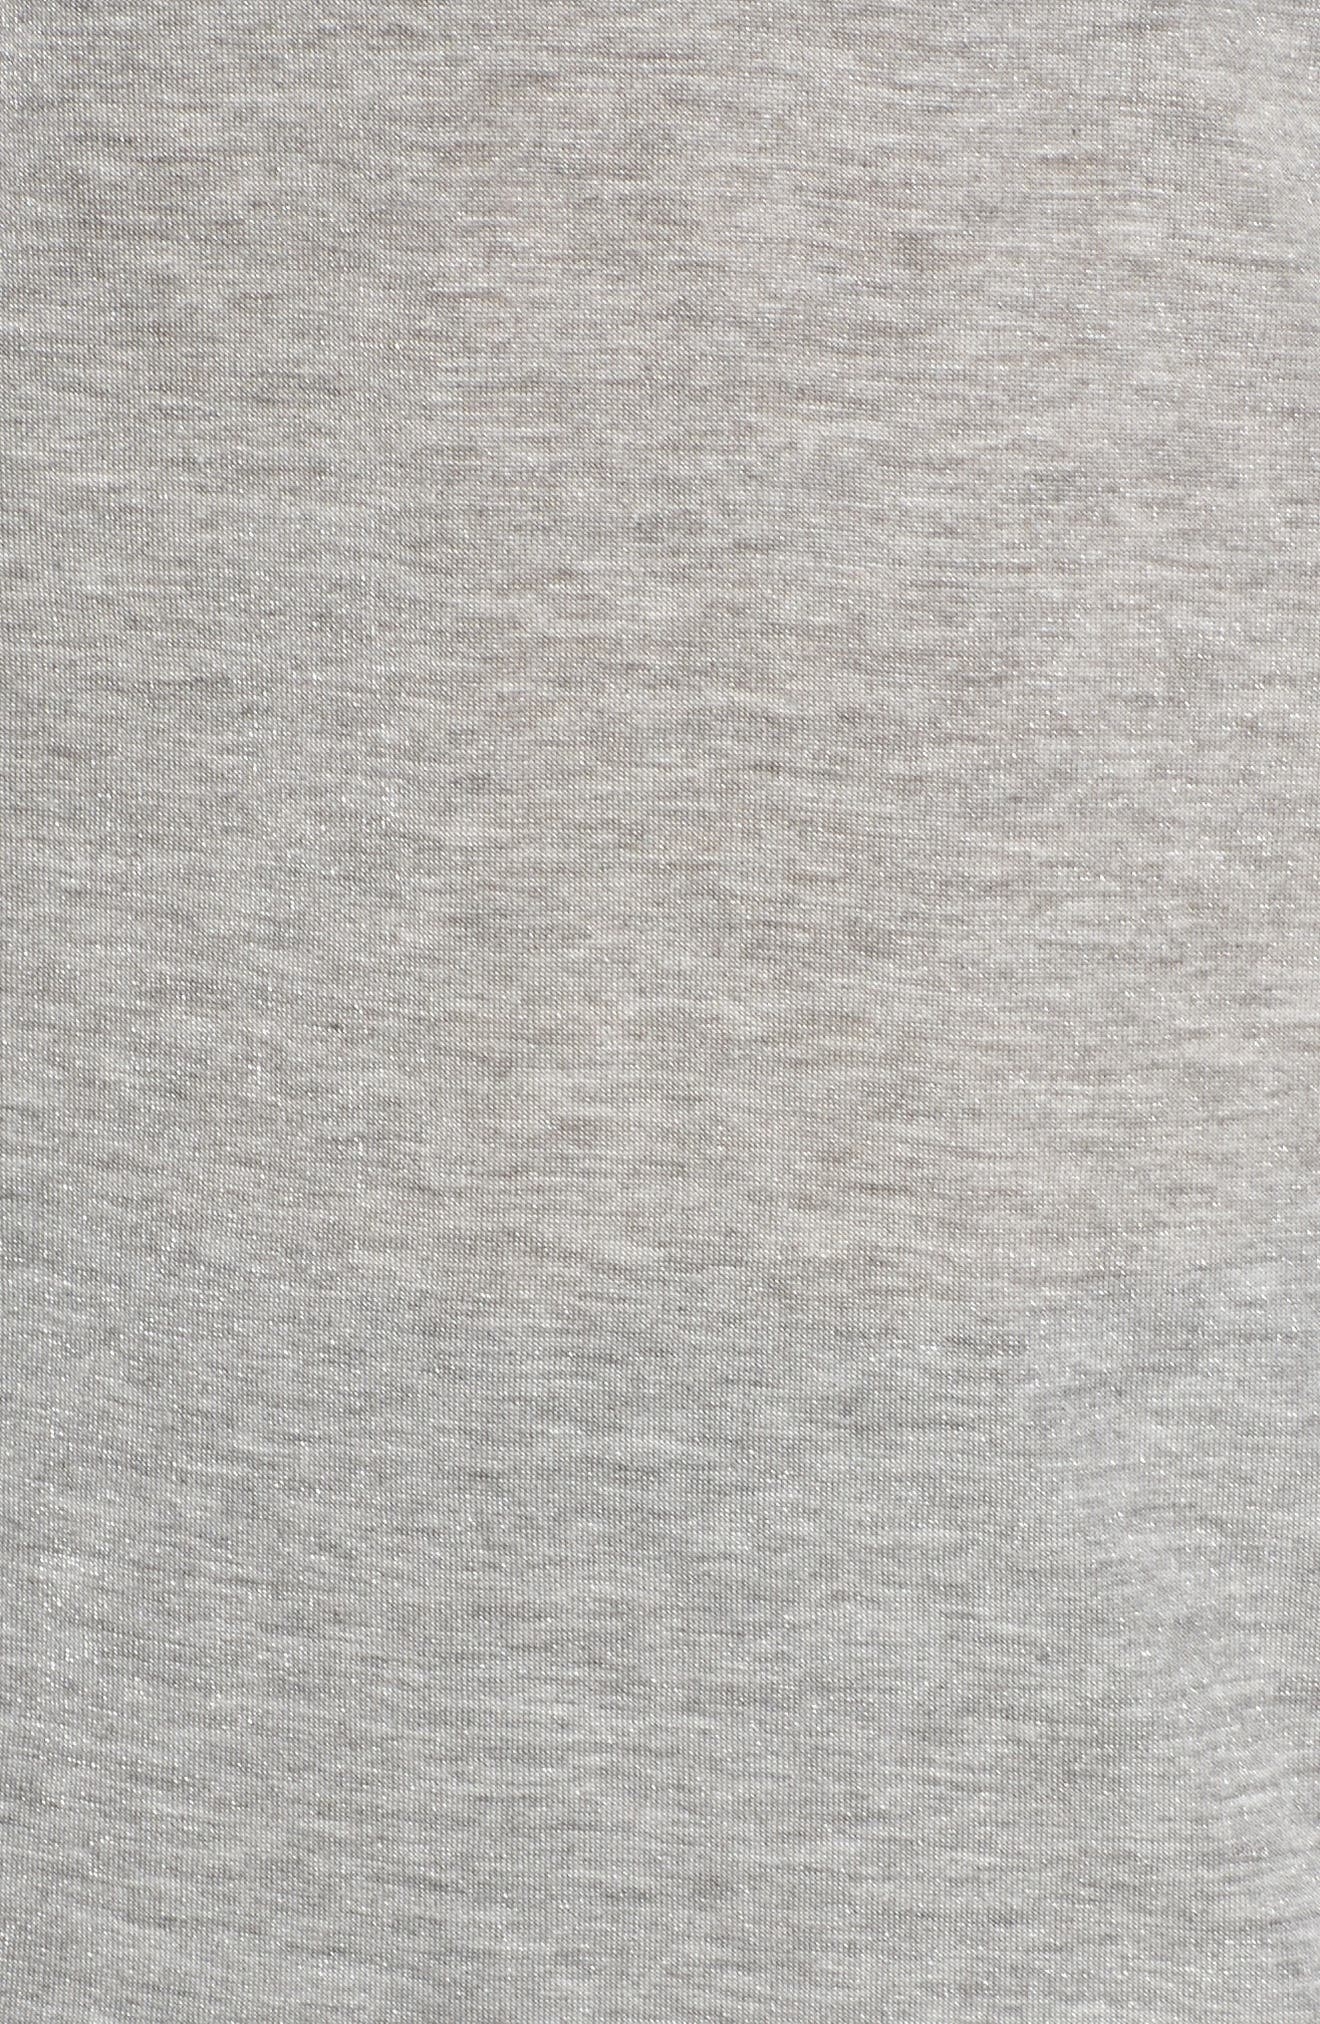 Boot Camp Tee,                             Alternate thumbnail 6, color,                             Grey Ash Heather